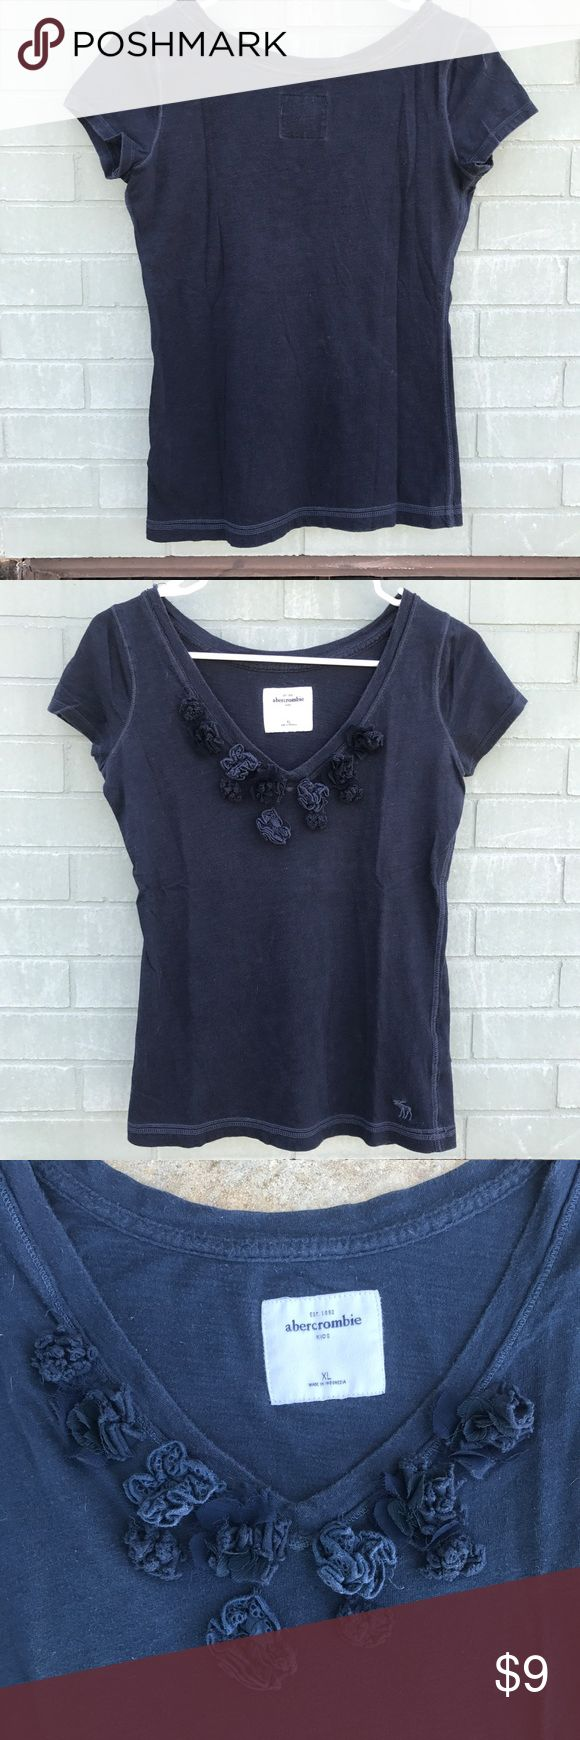 Abercrombie Kids V-Neck with Flower Details Navy blue Abercrombie & Fitch v-neck with cloth flowers on the front. Size is child XL but I usually wear an adult size XS or S and it fits me well (see picture). abercrombie kids Tops Tees - Short Sleeve